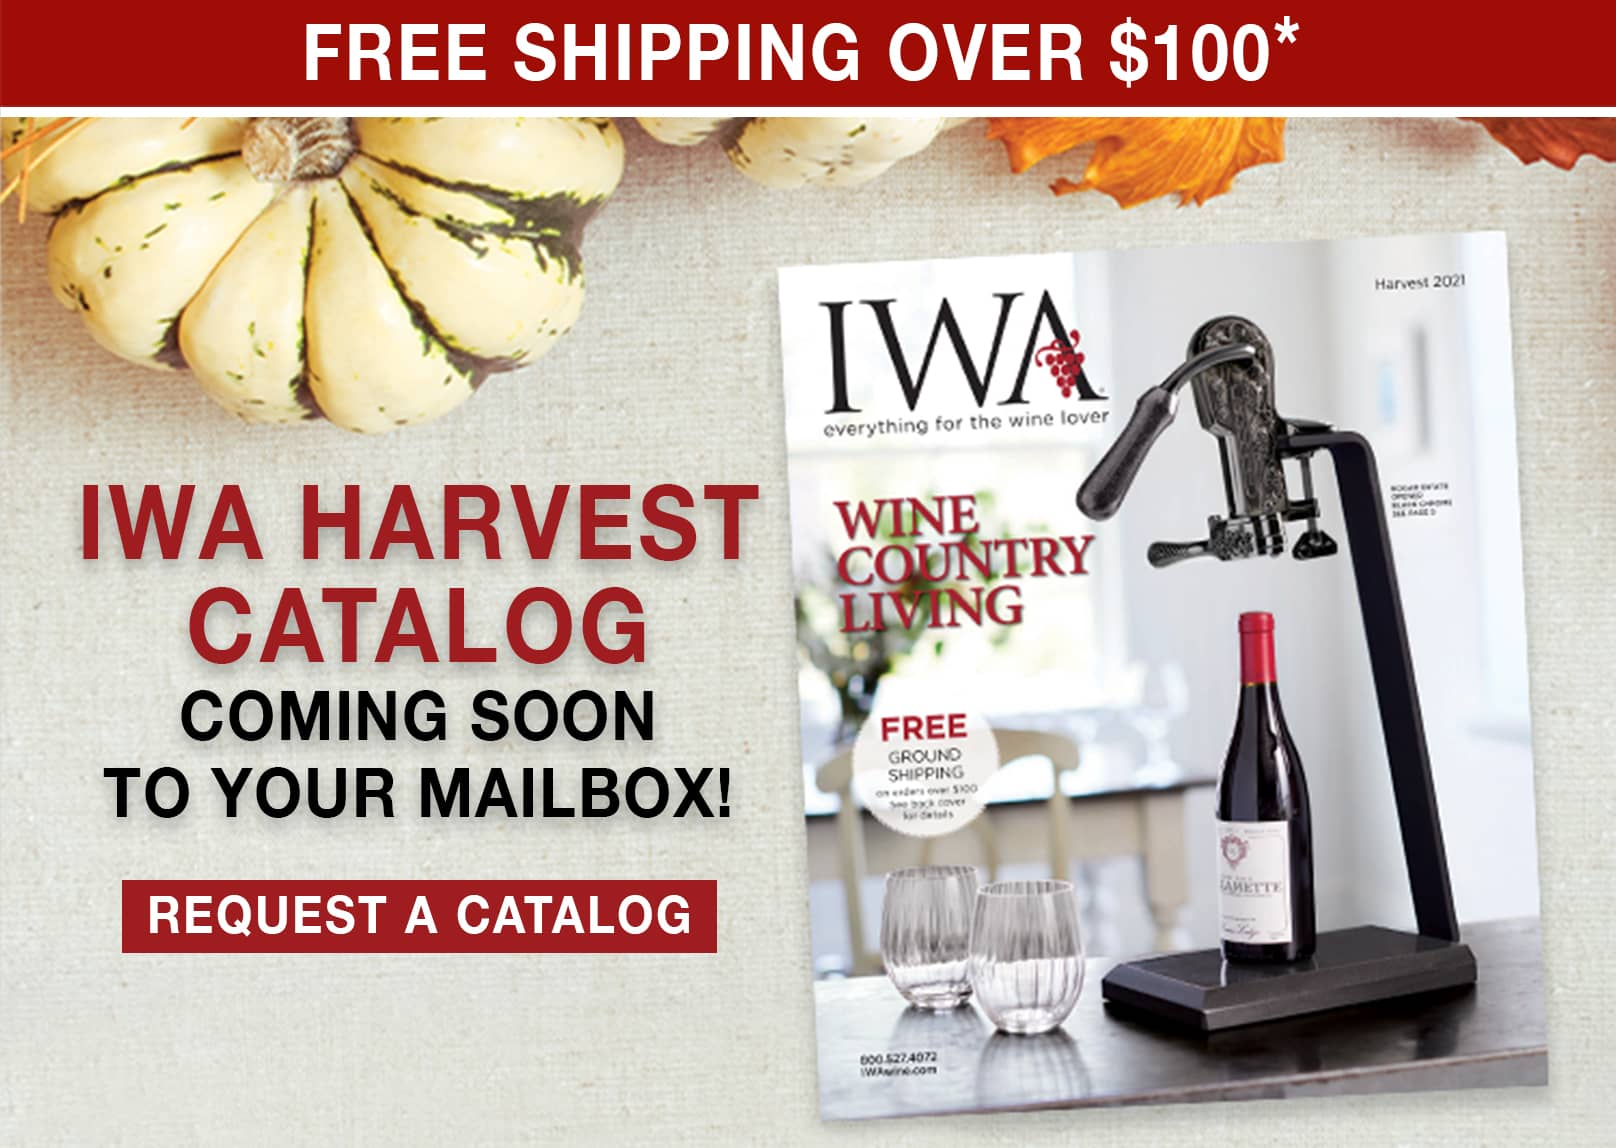 IWA Harvest Catalog Coming Soon to Your Mailbox - Free Shipping Over $100 Use Code: FS21W